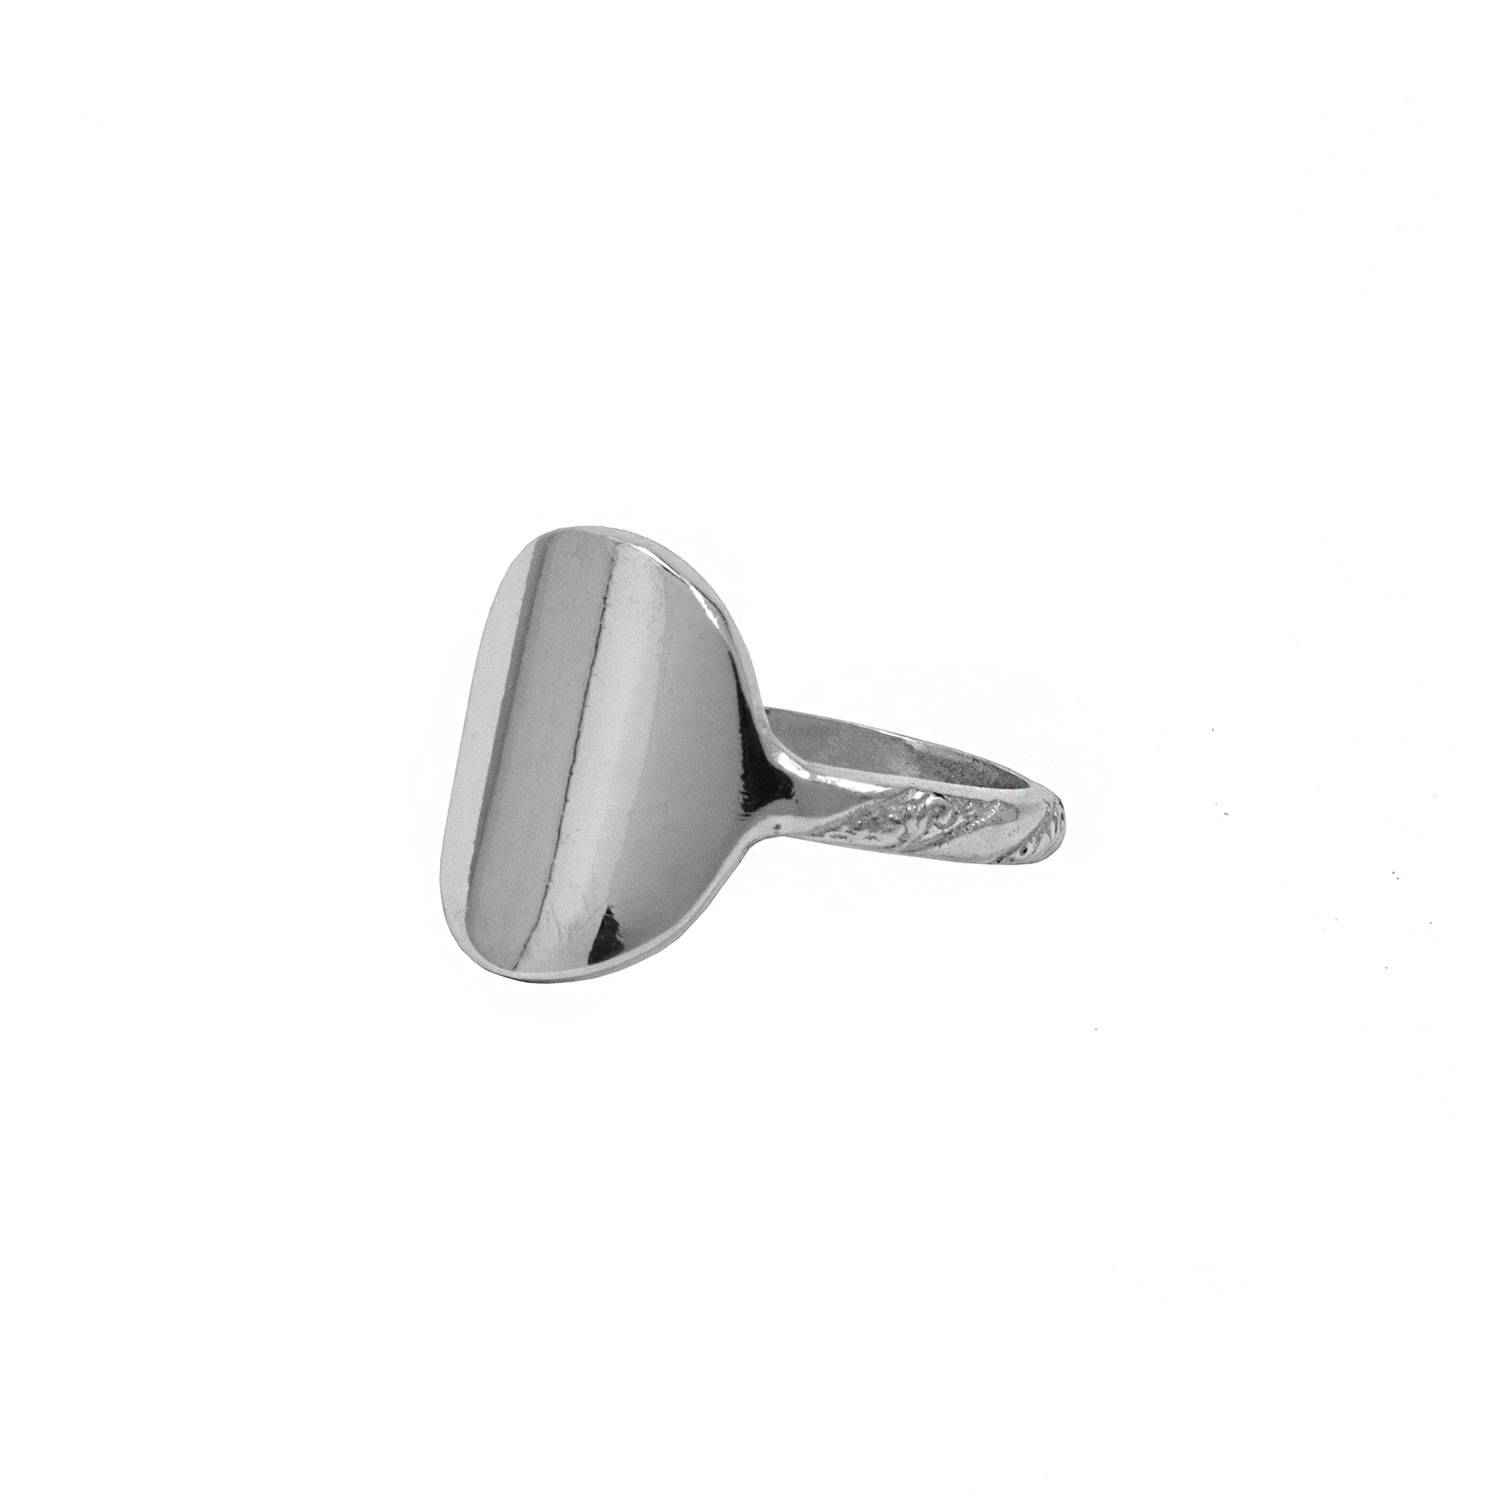 Annabelle Lucilla Jewellery - Full Moon Signet Ring Silver